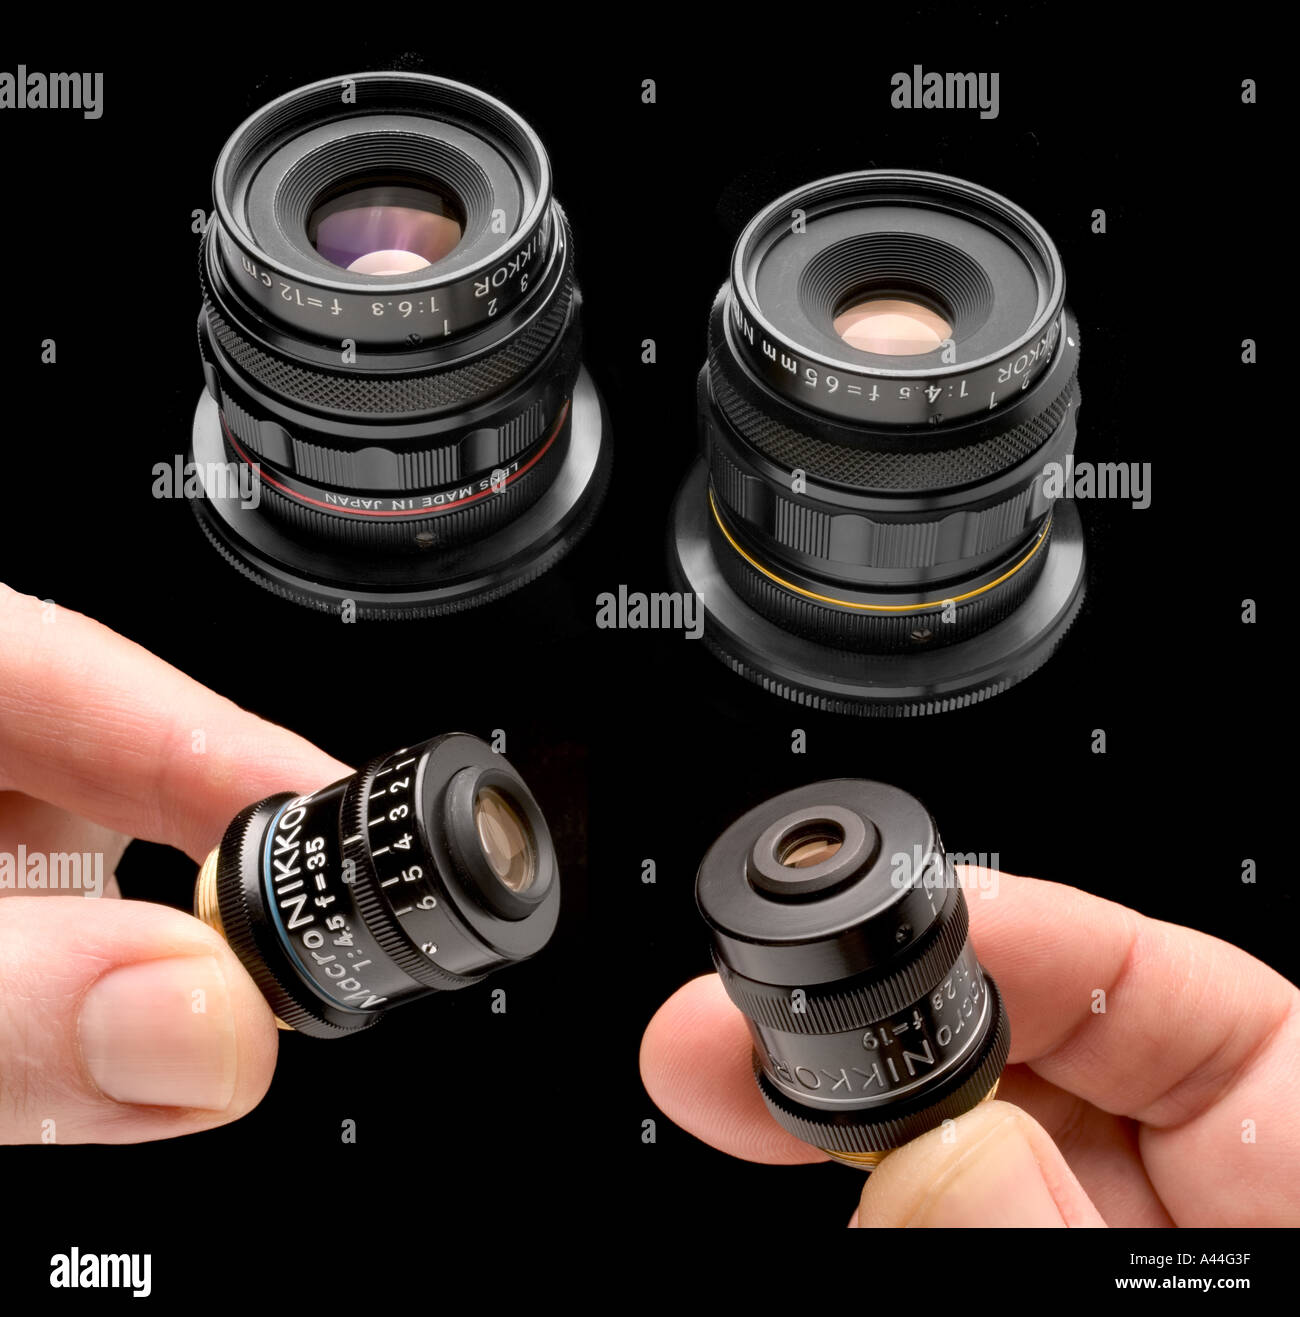 Nikon macro lenses from the Multiphot macro photography system 19mm 35mm 65mm 120mm lenses - Stock Image